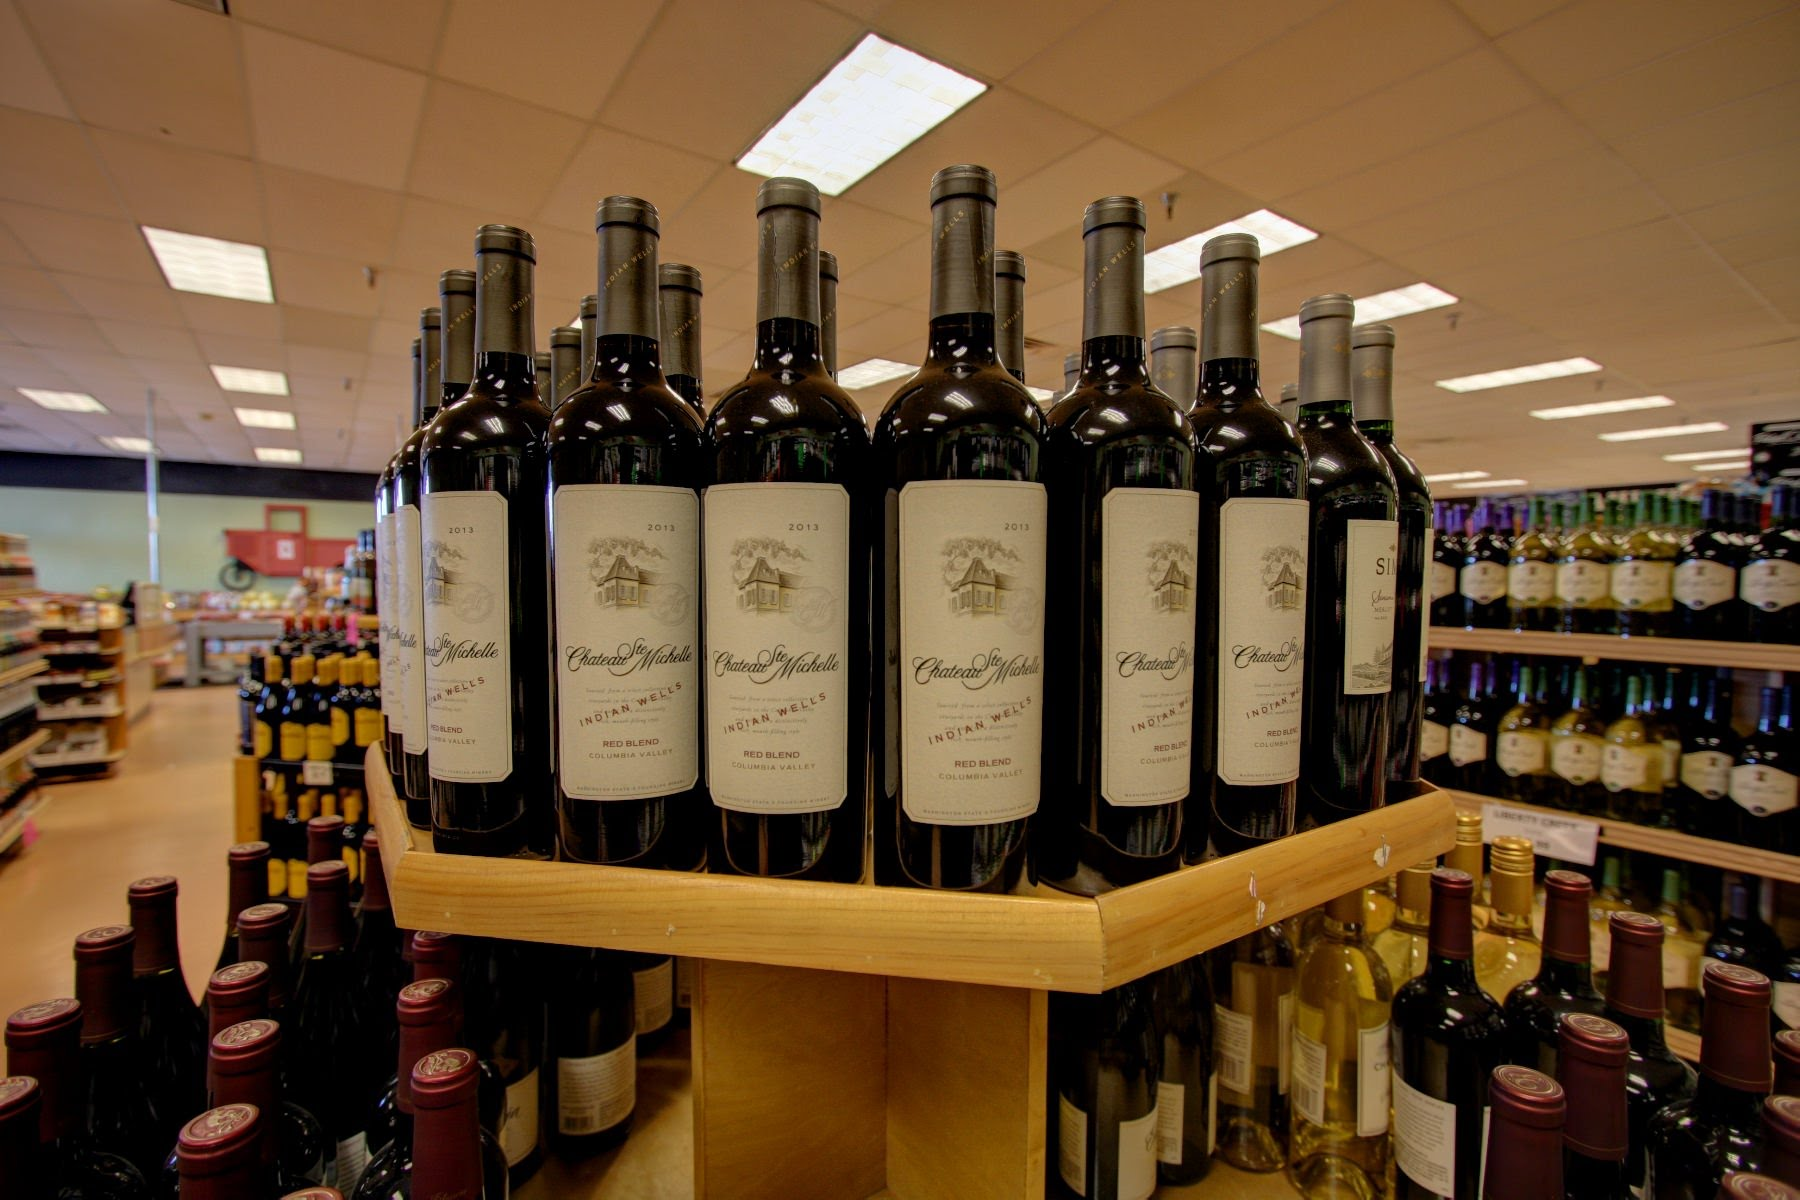 Discover New Wines at Our Wine Tasting Events